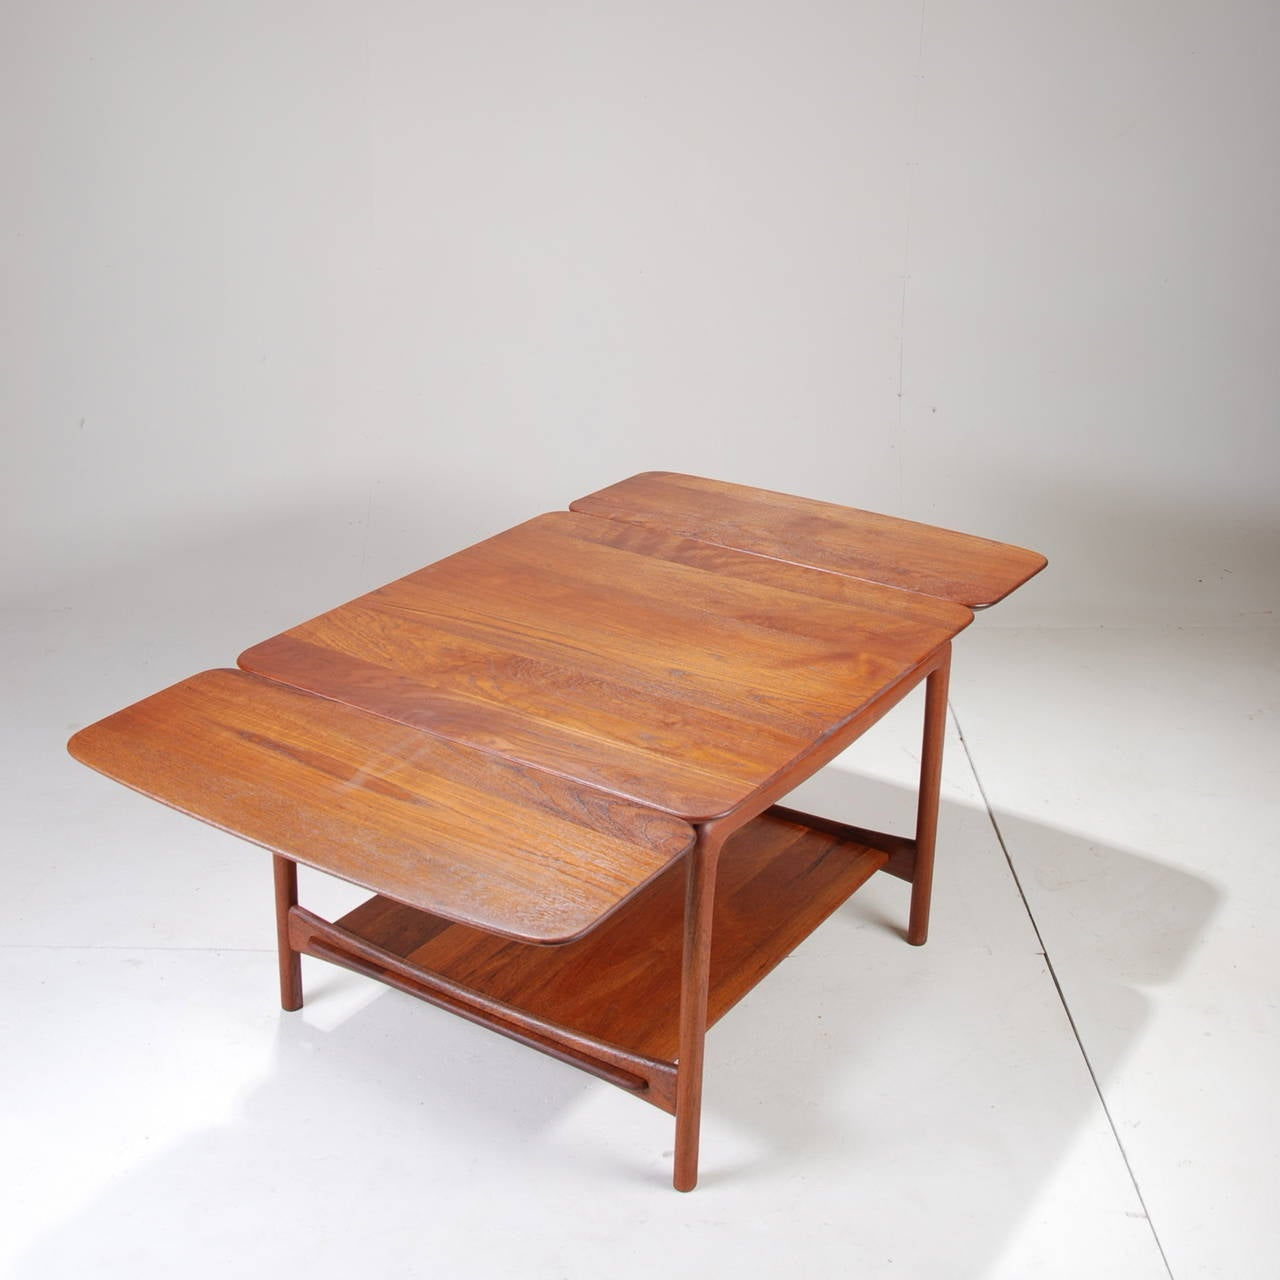 Solid Teak Drop Leaf Coffee Table By Peter Hvidt For John Stuart At 1stdibs